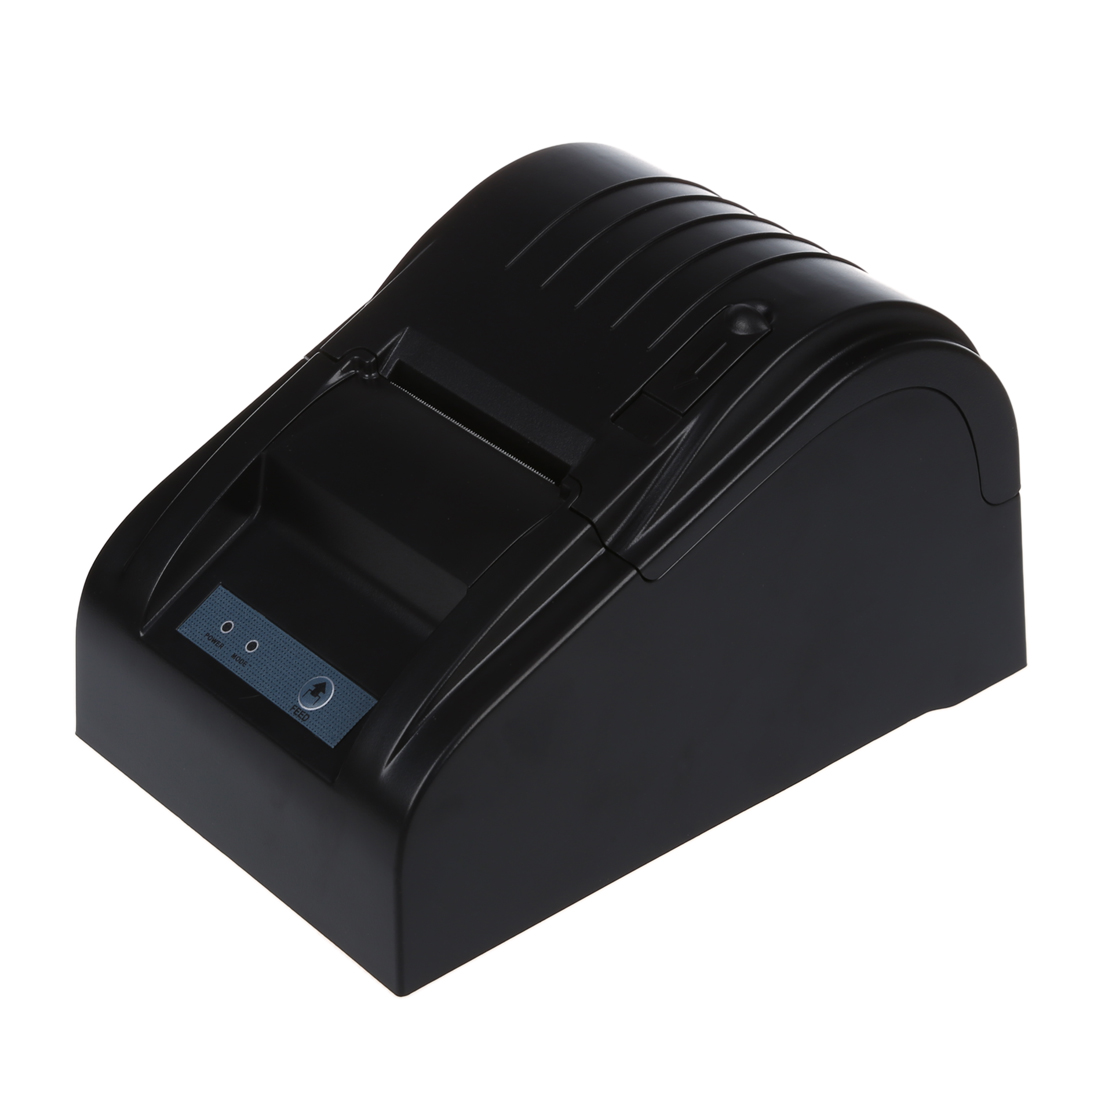 HOT Thermal Printer for tickets and receipts (58mm, 90mm / s, Windows compatible), Black